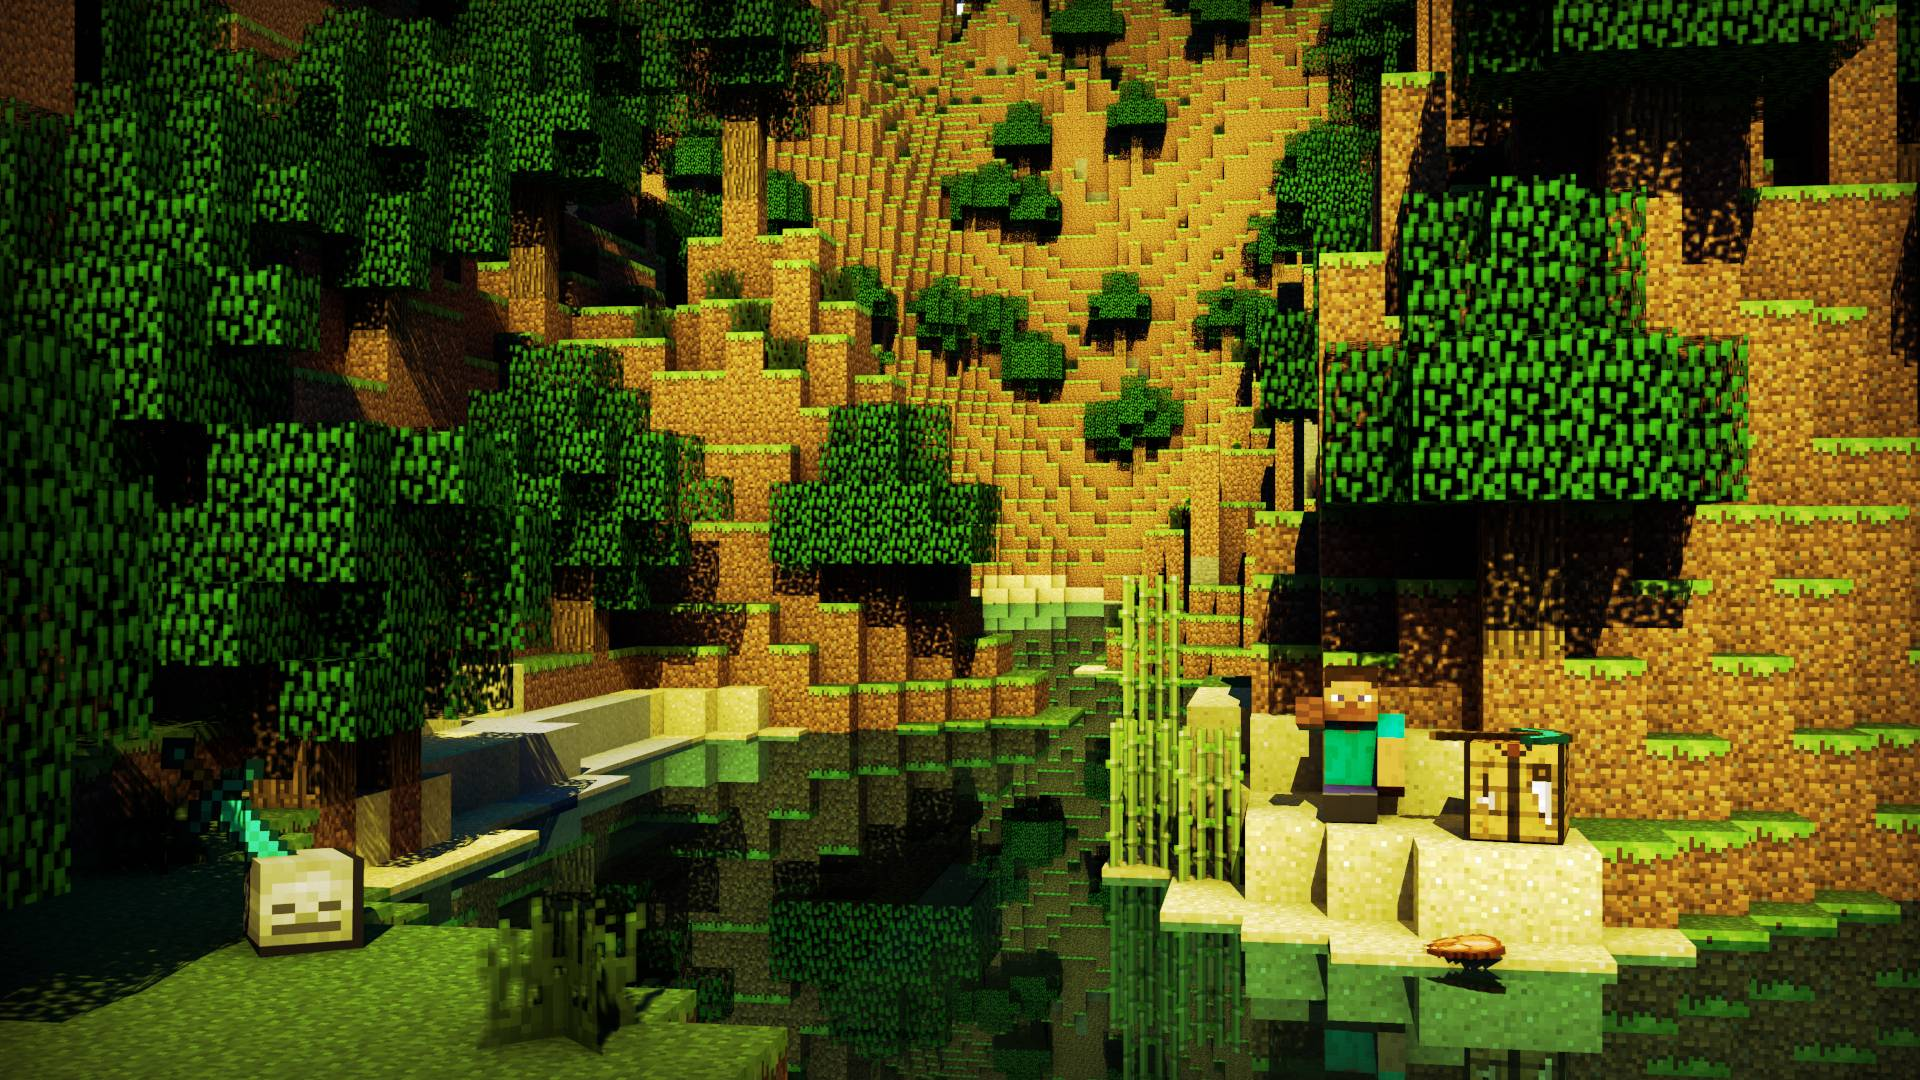 talons1337s minecraft wallpapers - photo #25